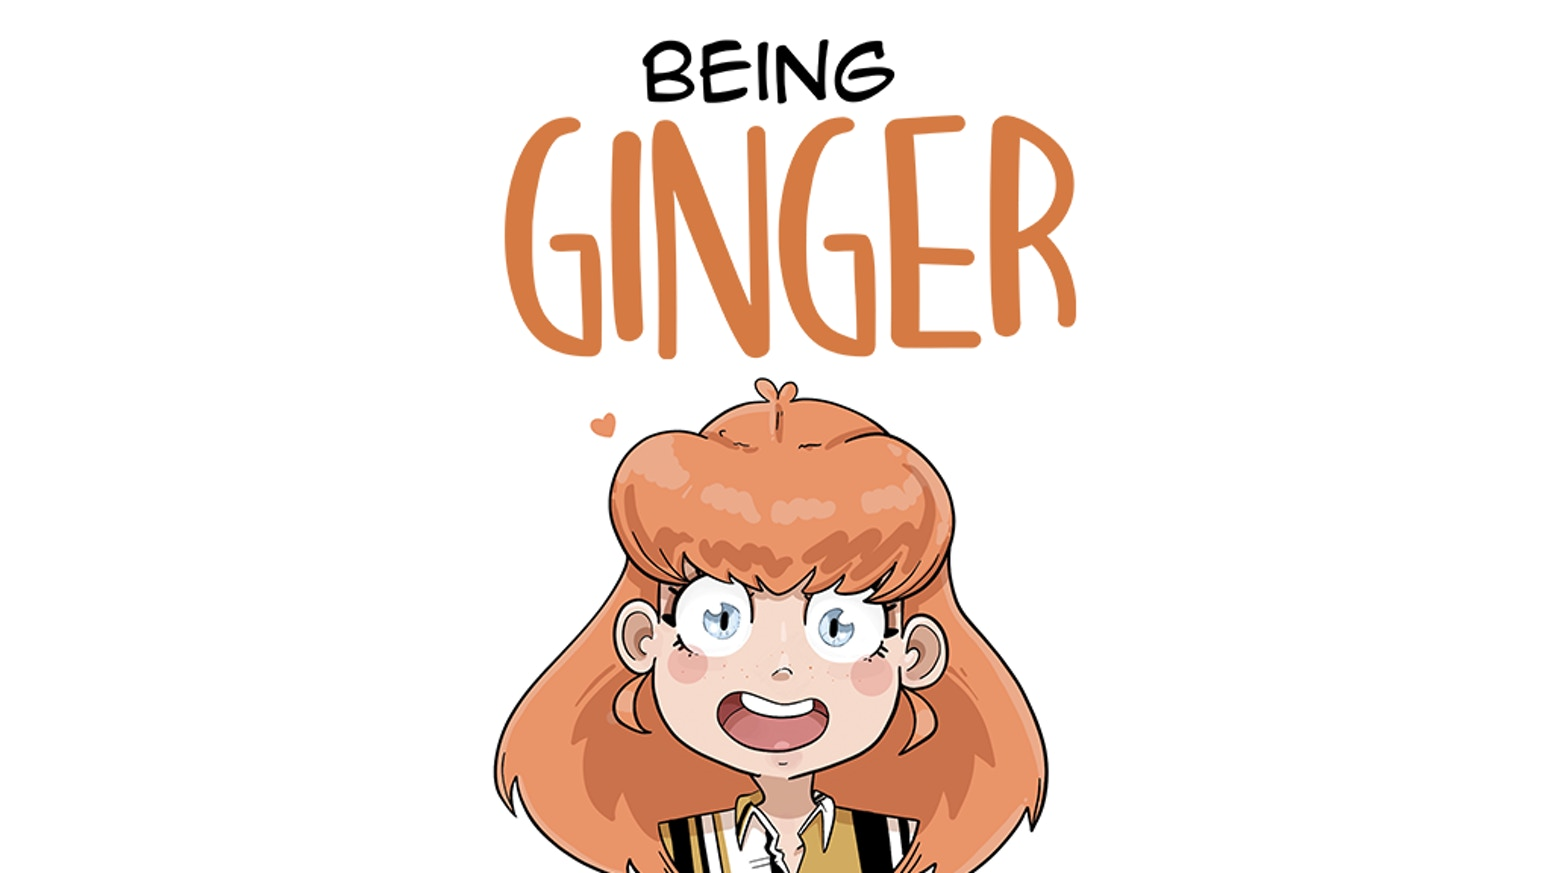 A biographic diary comic book about all the funny and bizarre things us gingers go through.